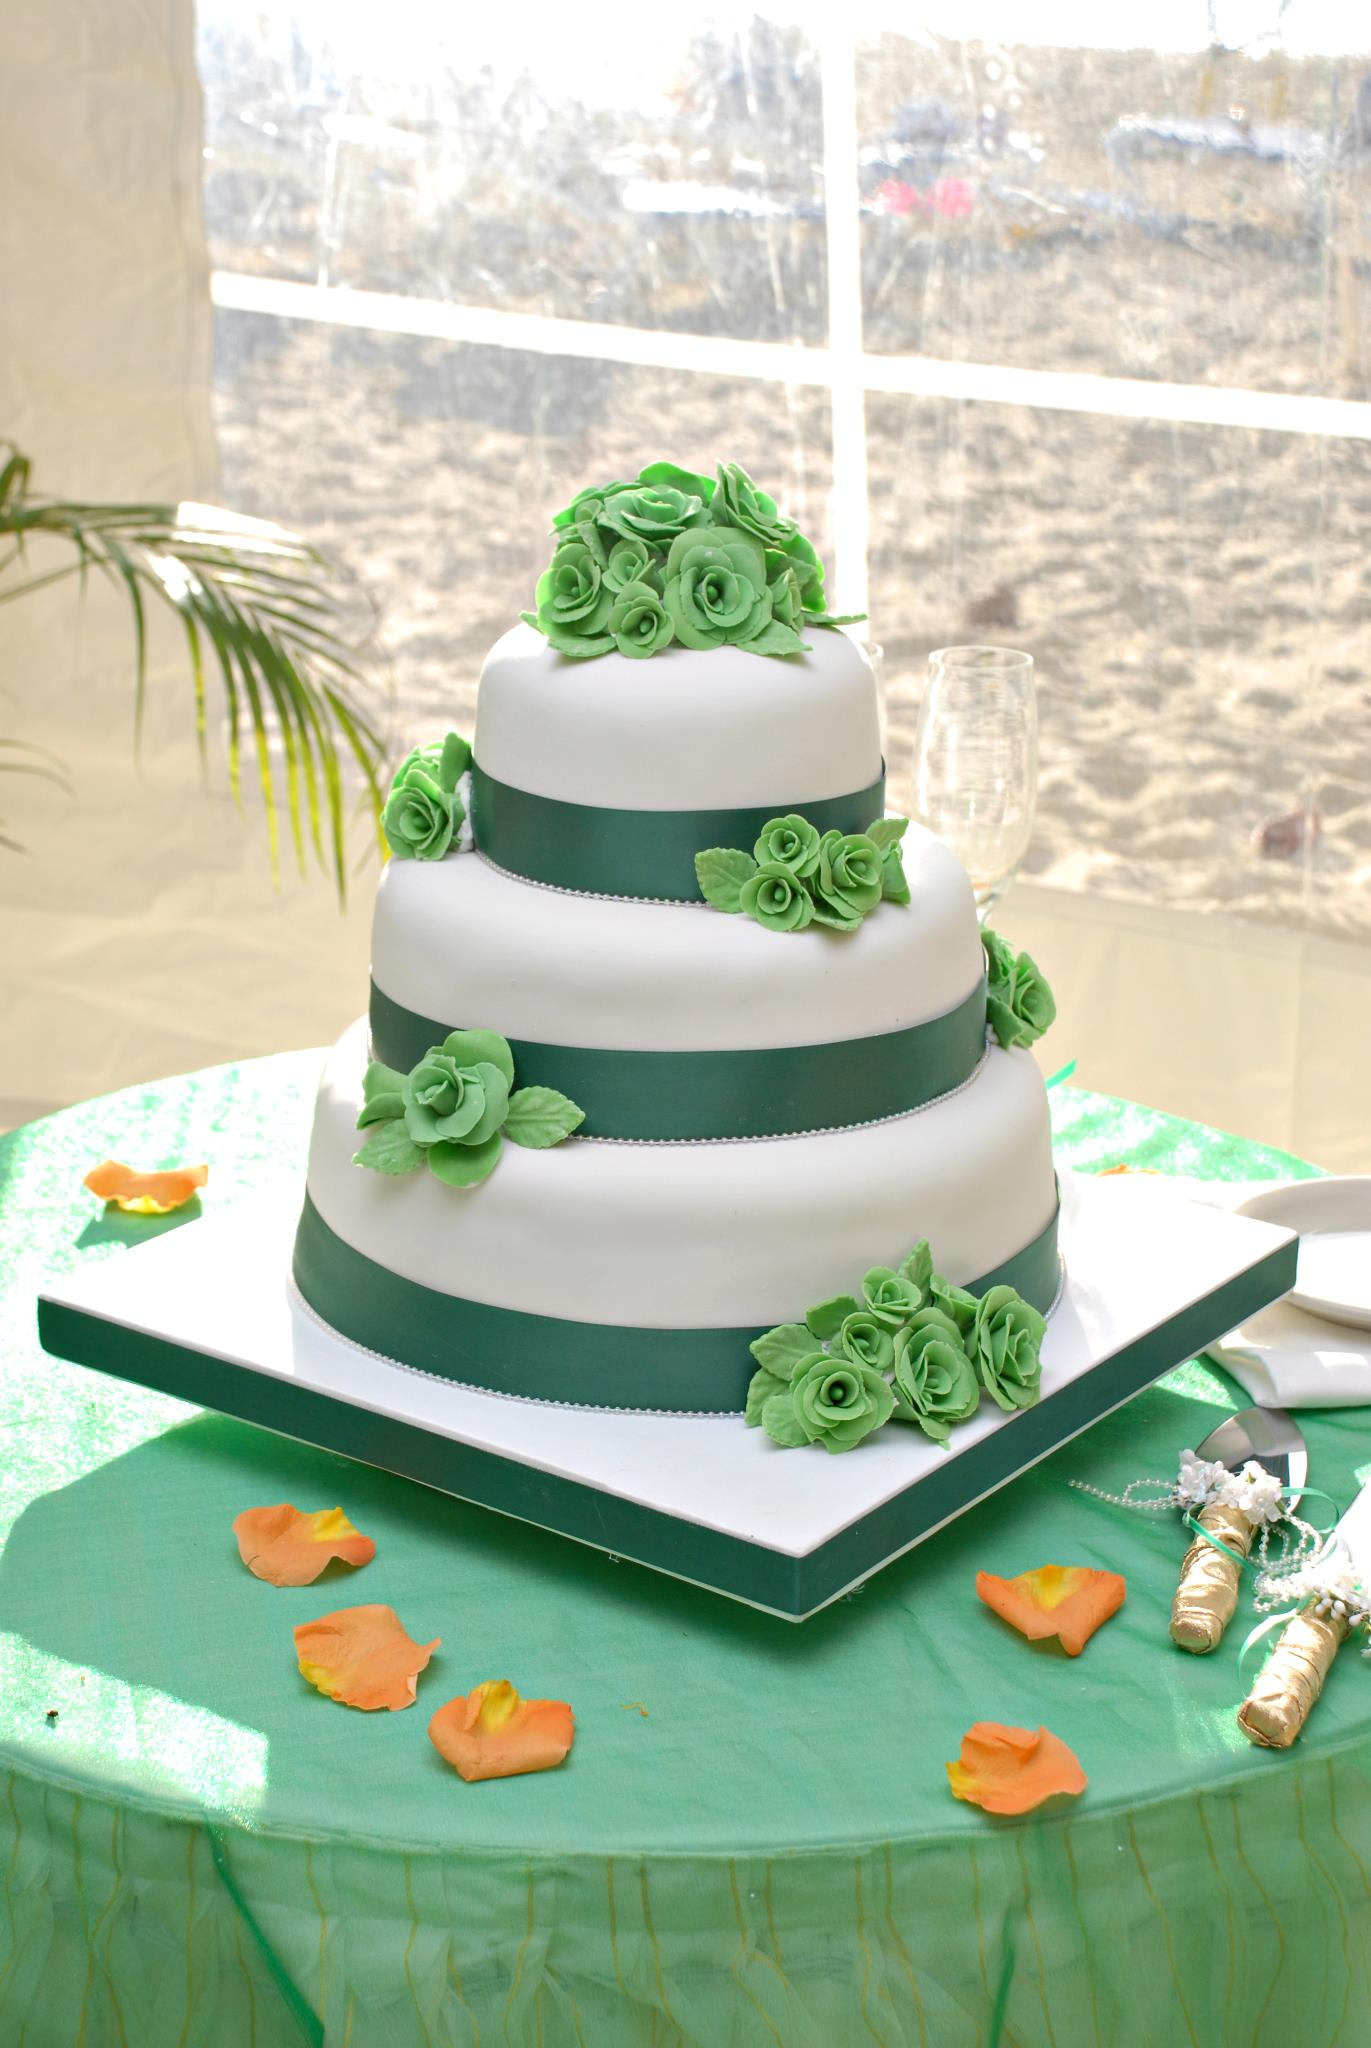 jamaican wedding cake - photo #32